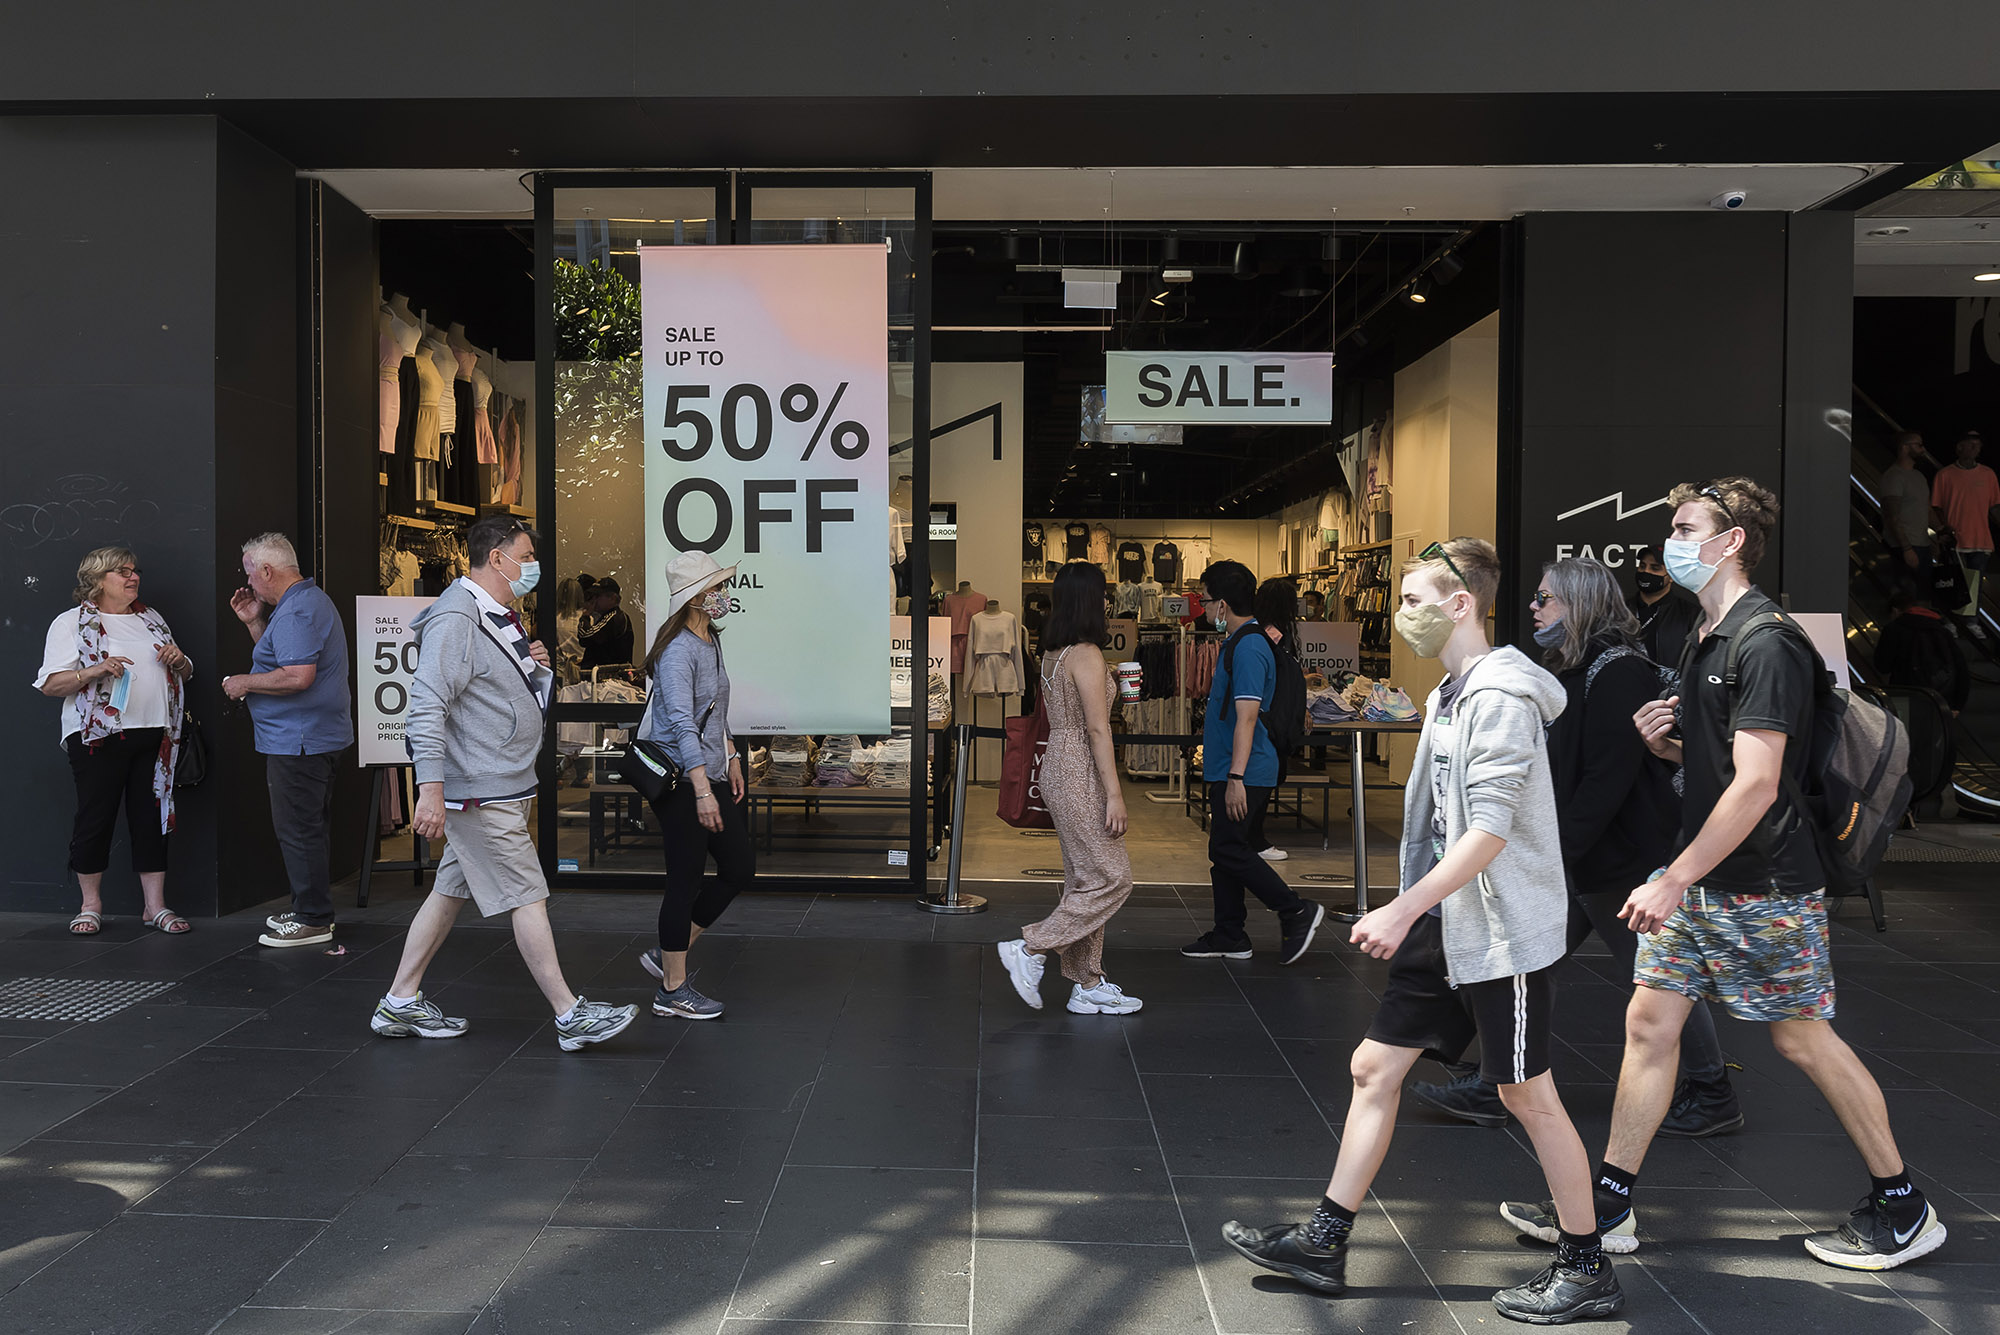 Shoppers walk along Bourke Street Mall during Boxing Day sales on December 26, in Melbourne, Australia.